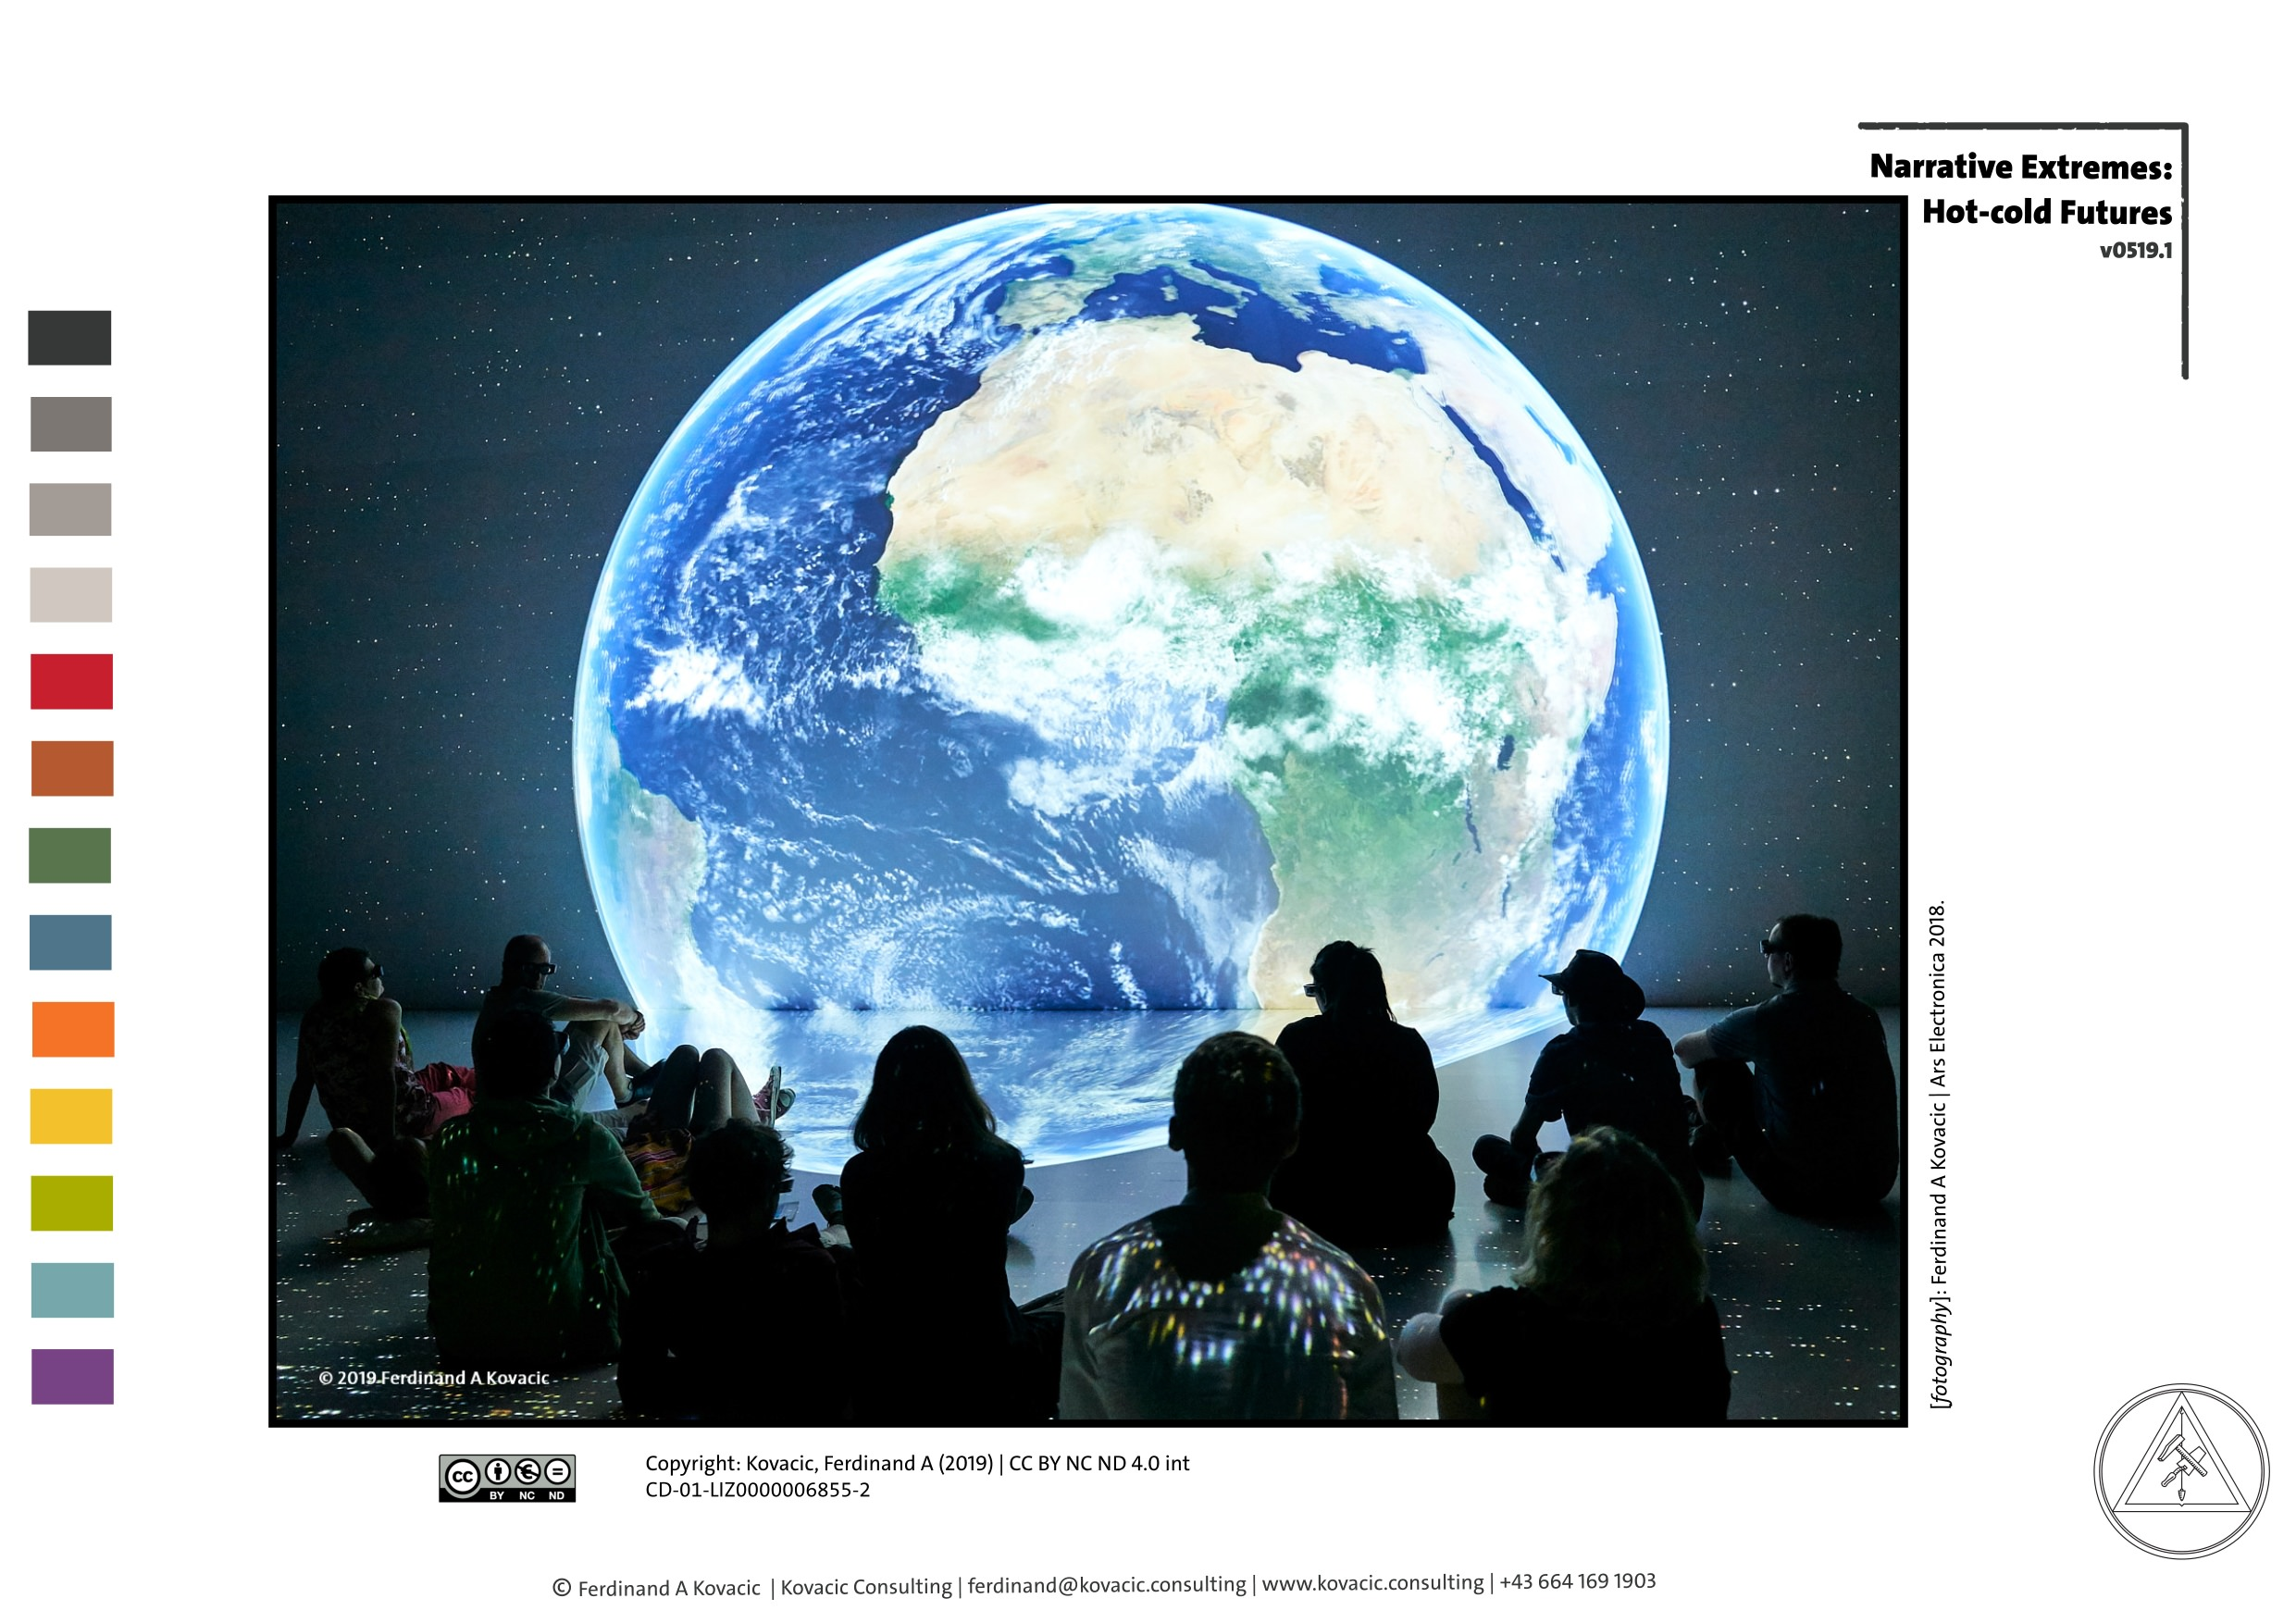 Narrative Extremes. Hot-cold Futures. Ars Electronica. Linz